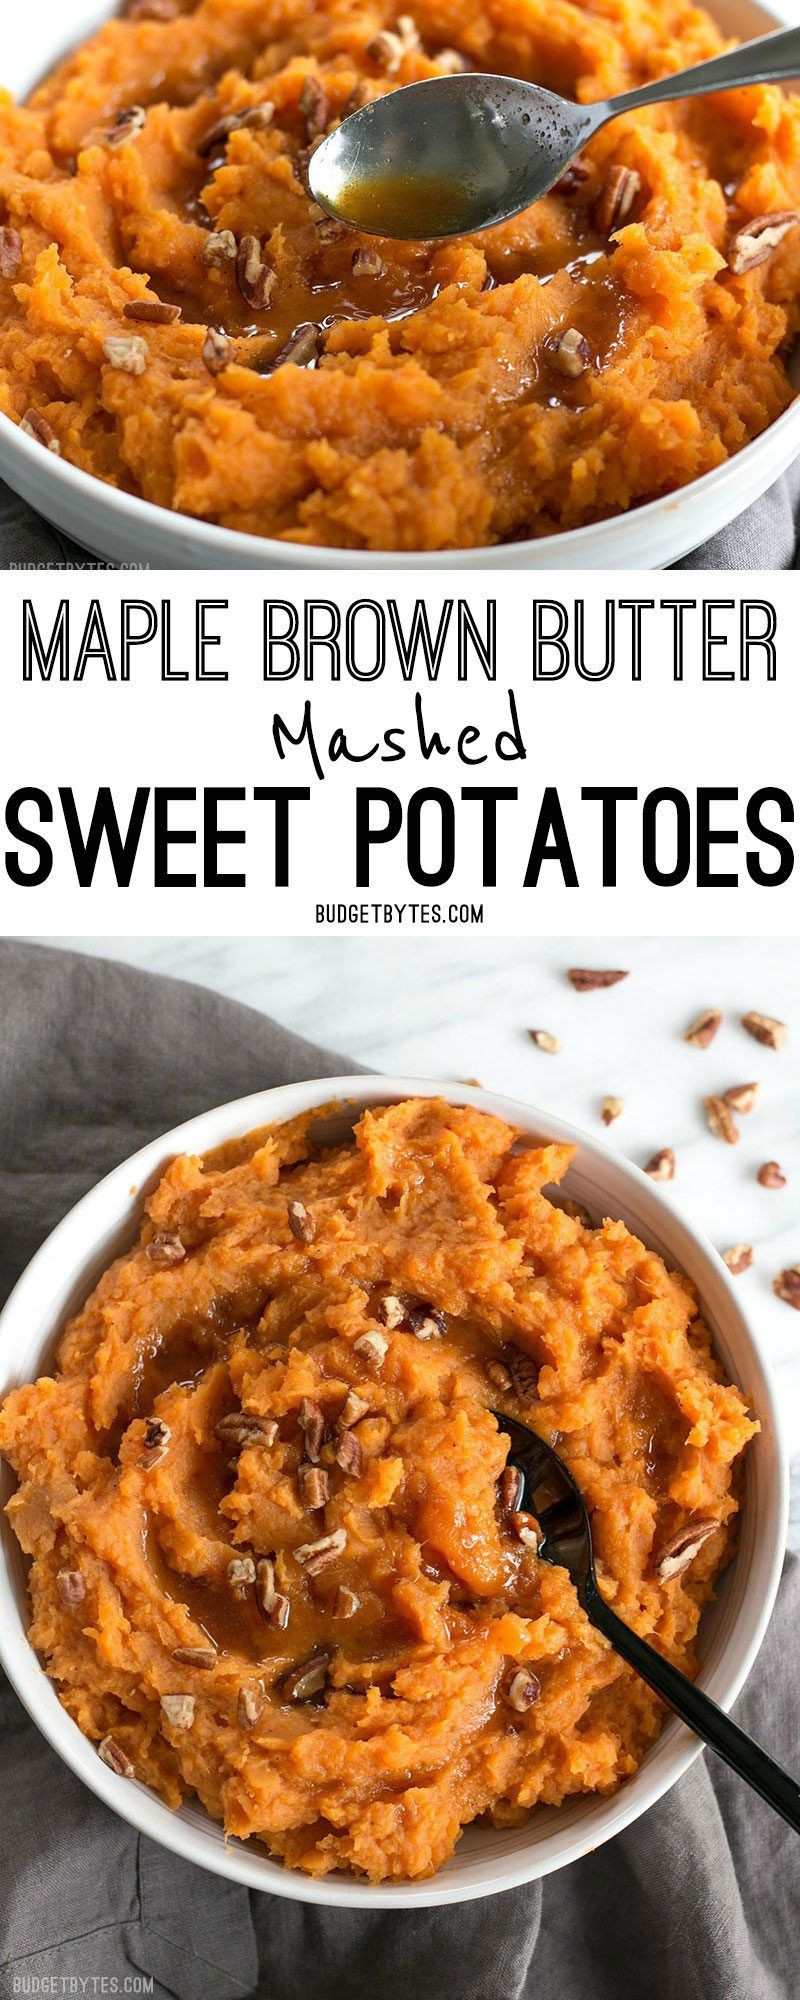 Sweet Potatoes Recipe For Thanksgiving Dinner  Maple Brown Butter Mashed Sweet Potatoes Recipe